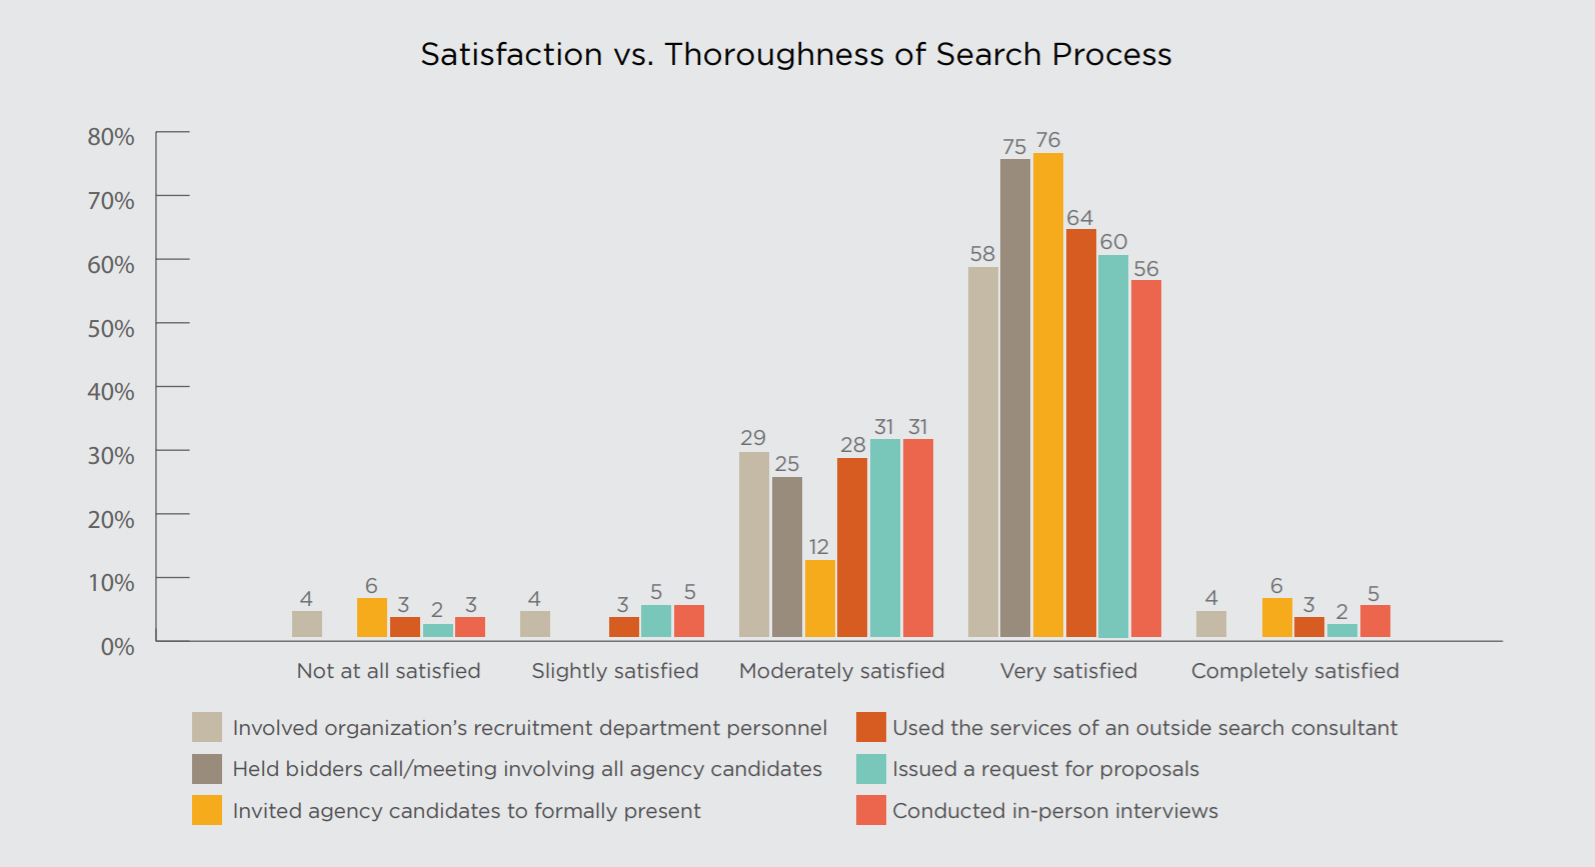 How to Improve Agency Search Outcomes